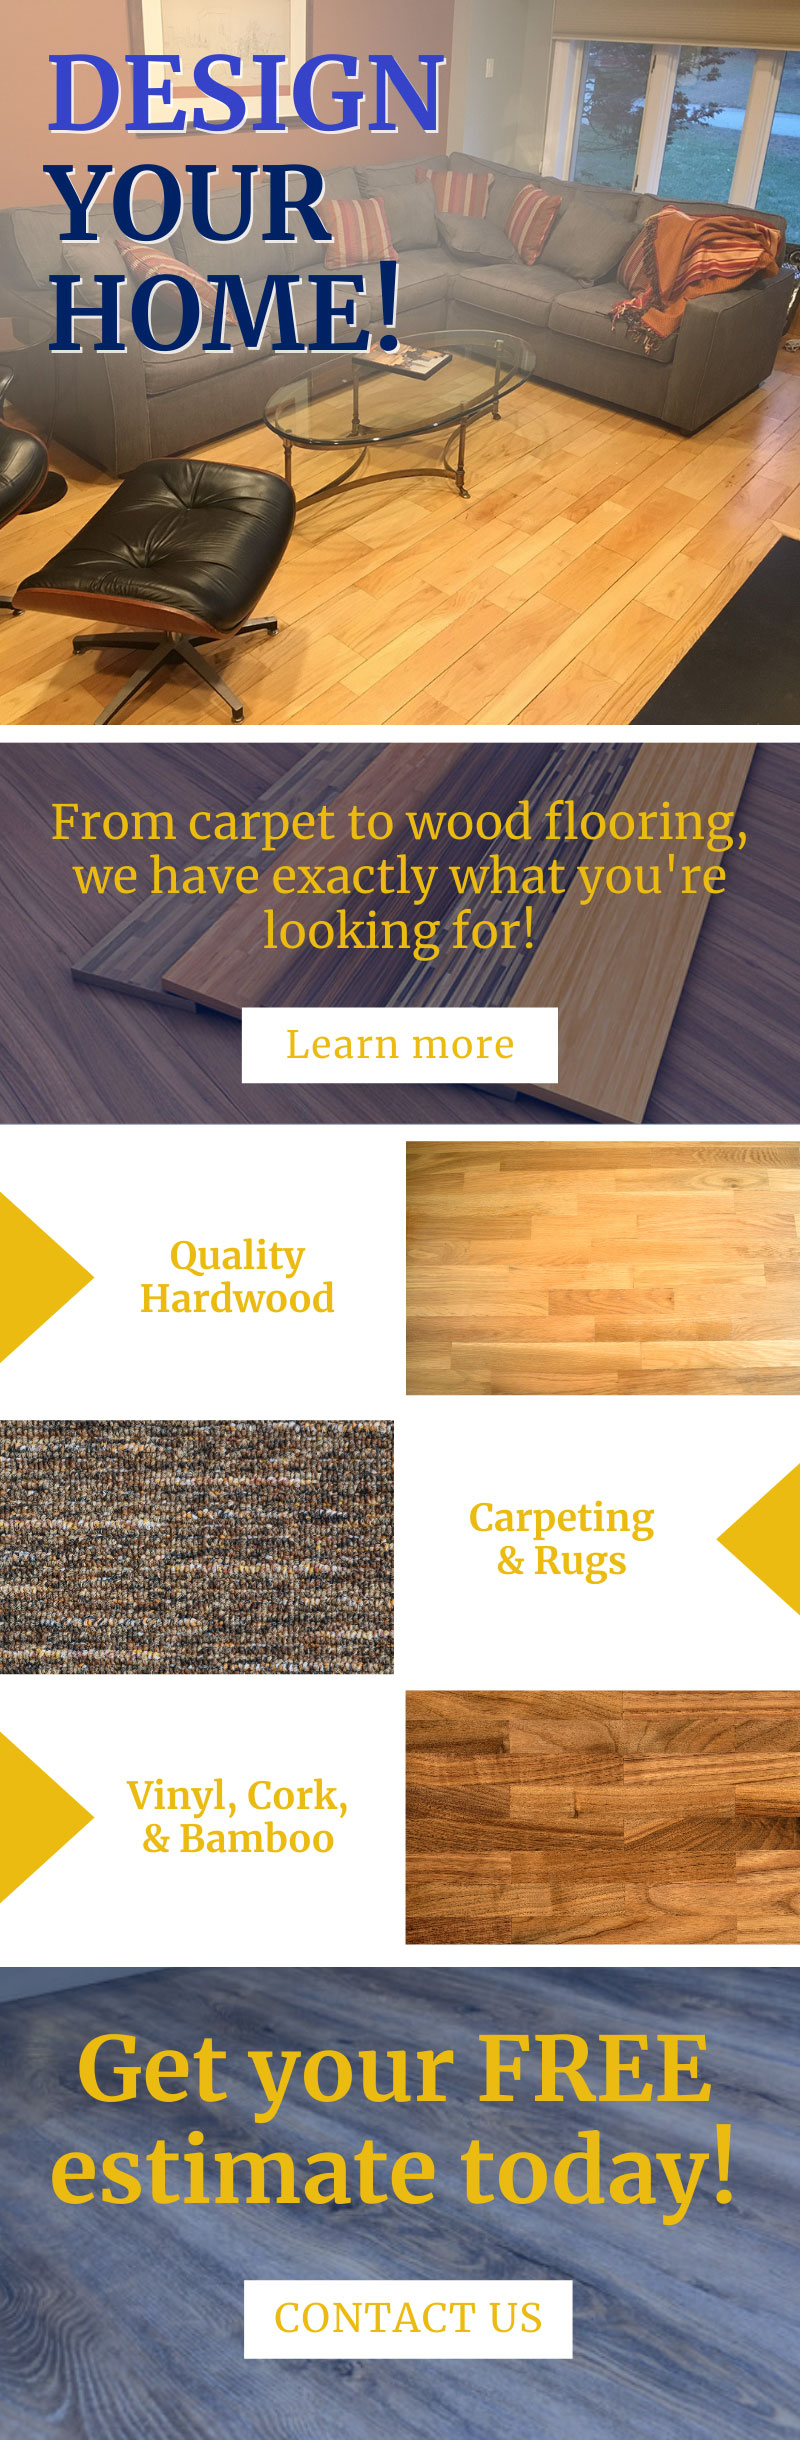 Design Your Home! 1